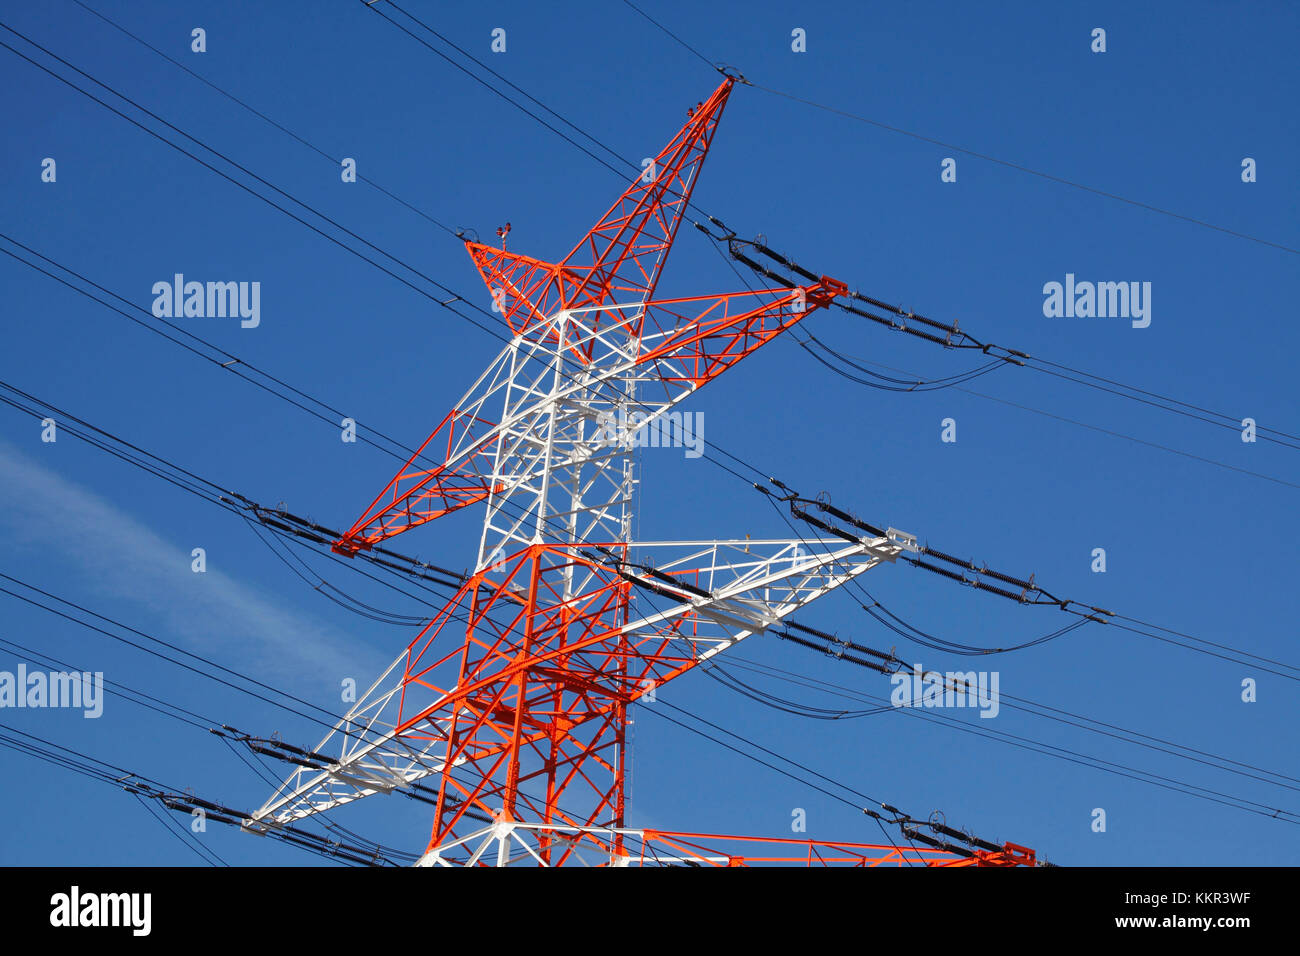 High Voltage Transmission Lines : Electric power transmission lines high stock photos